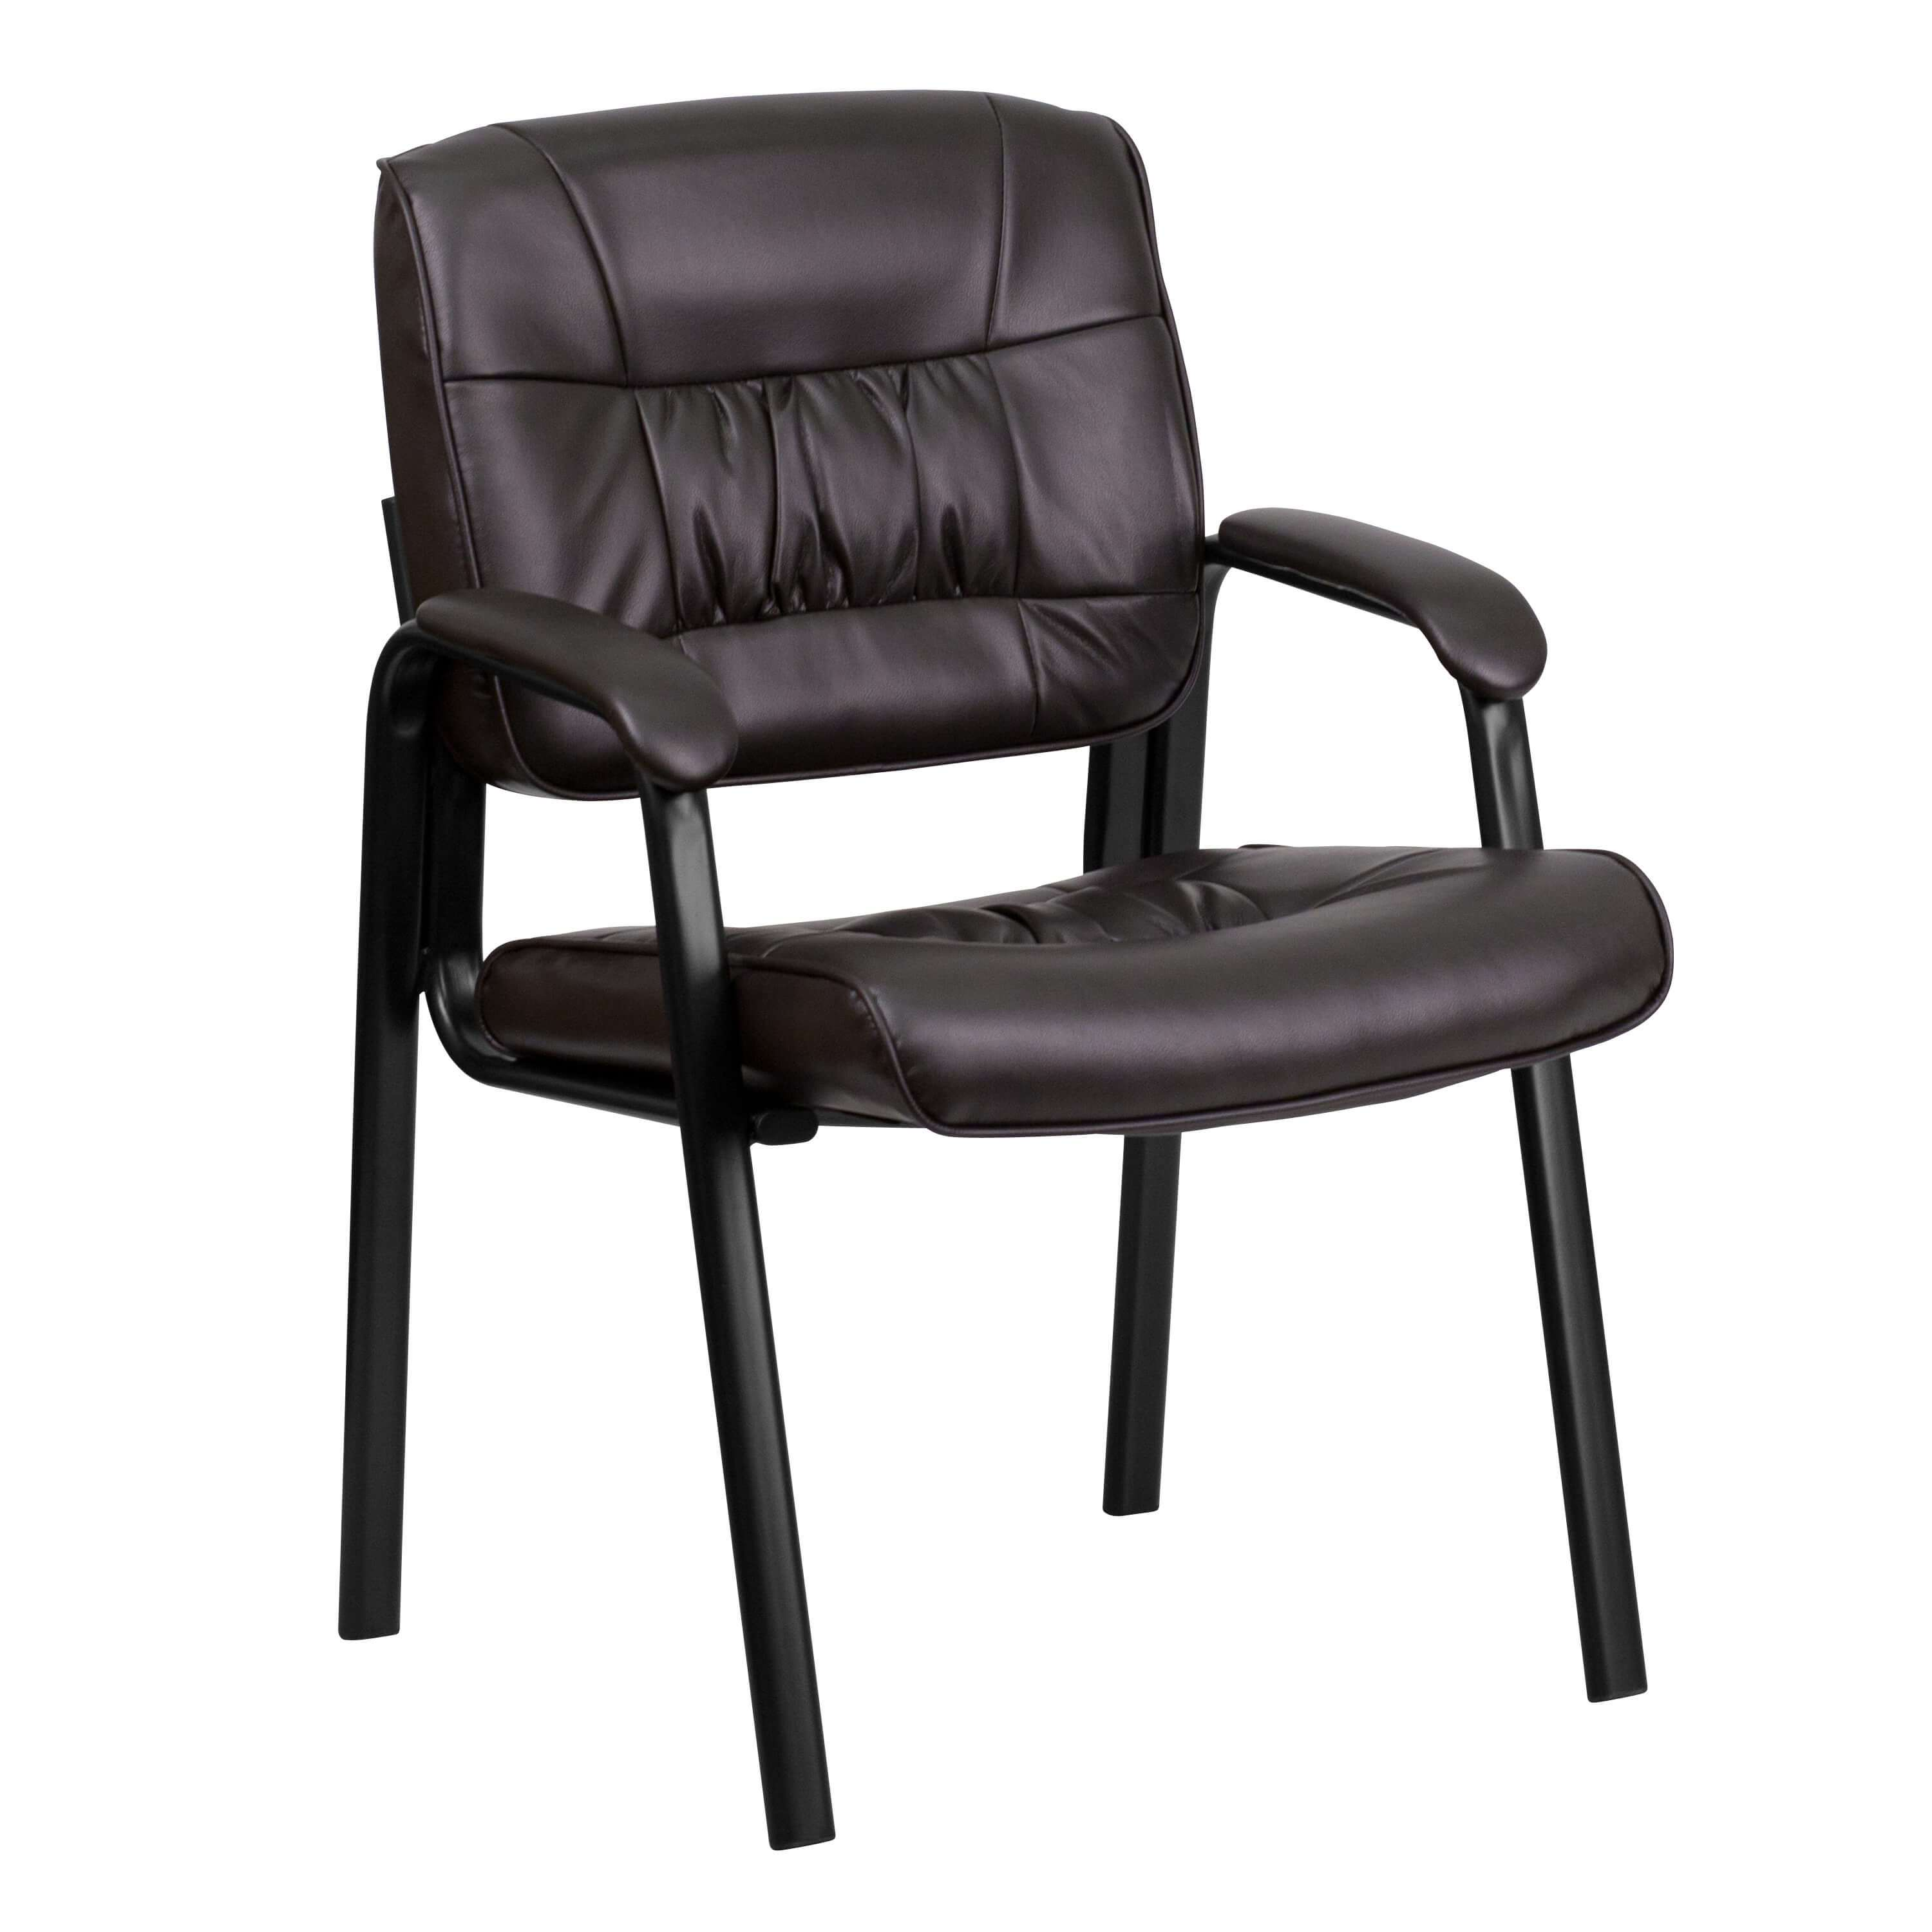 Side chairs with arms CUB BT 1404 BN GG FLA